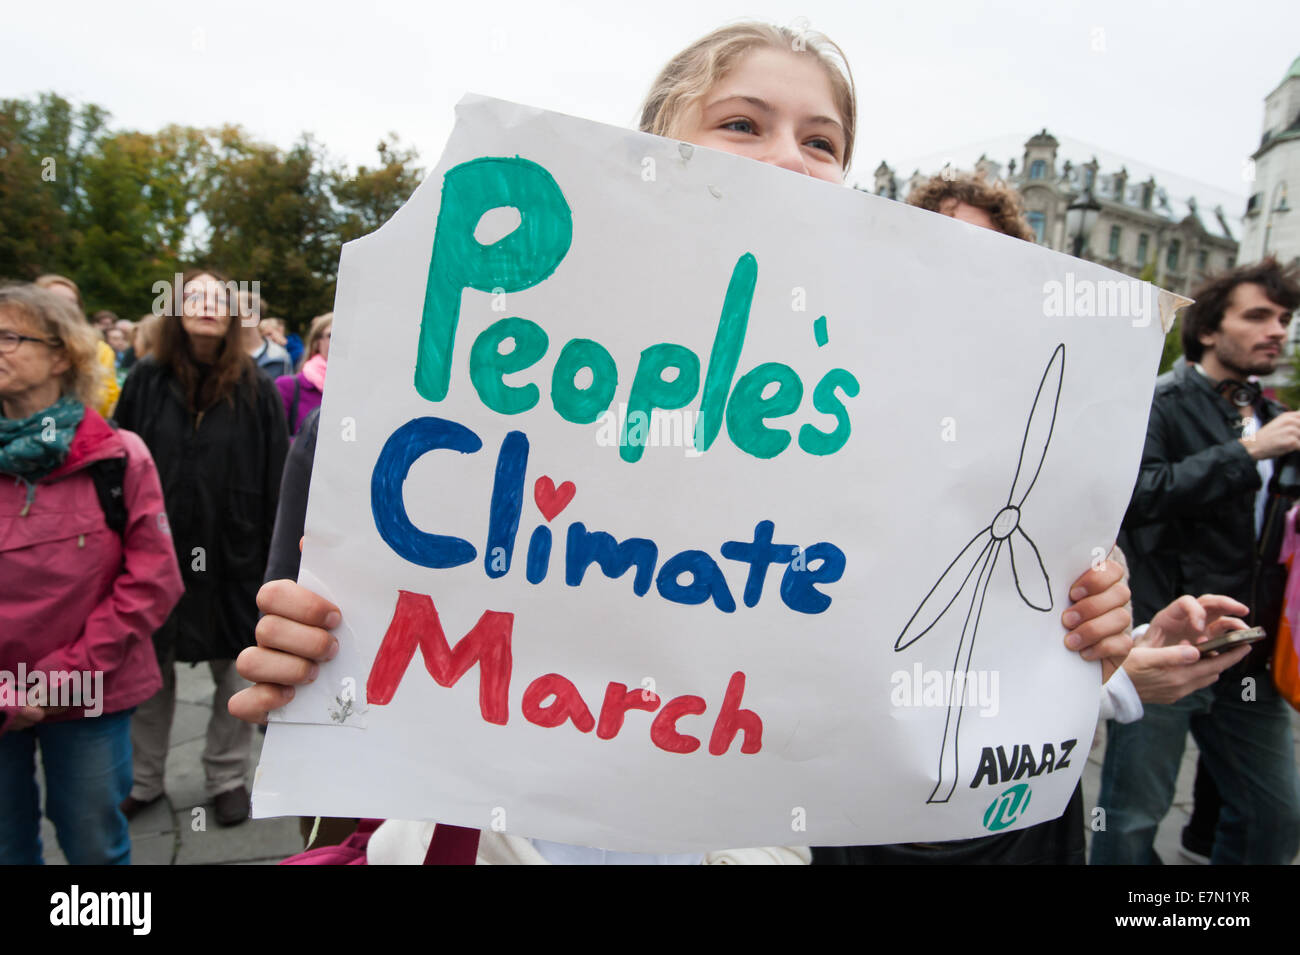 Oslo, Norway. 21st Sep, 2014. A sign reads, 'People's Climate March', as thousands march through central - Stock Image